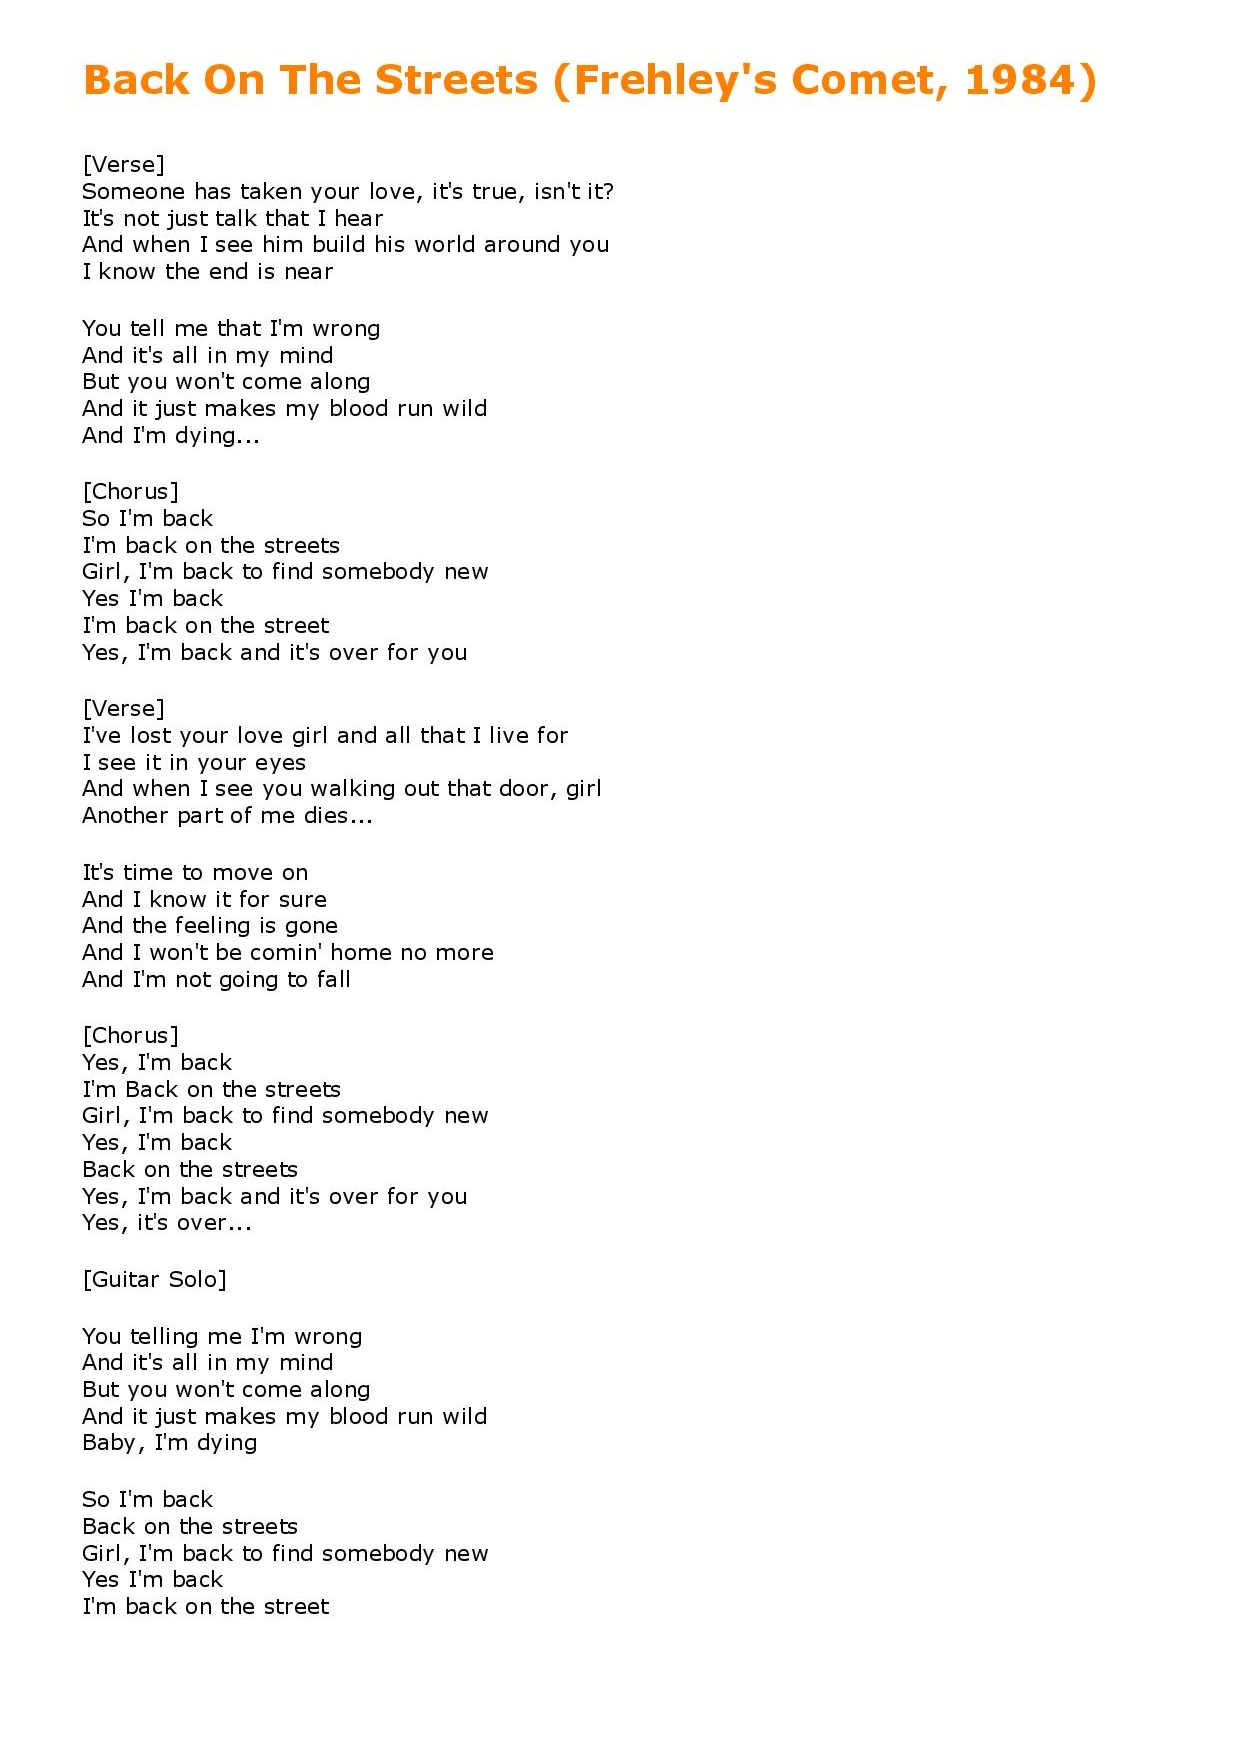 KISSMONSTER - Unreleased Demo Lyrics - Back On The Streets (Frehley s Comet, 1984)-page-001.jpg